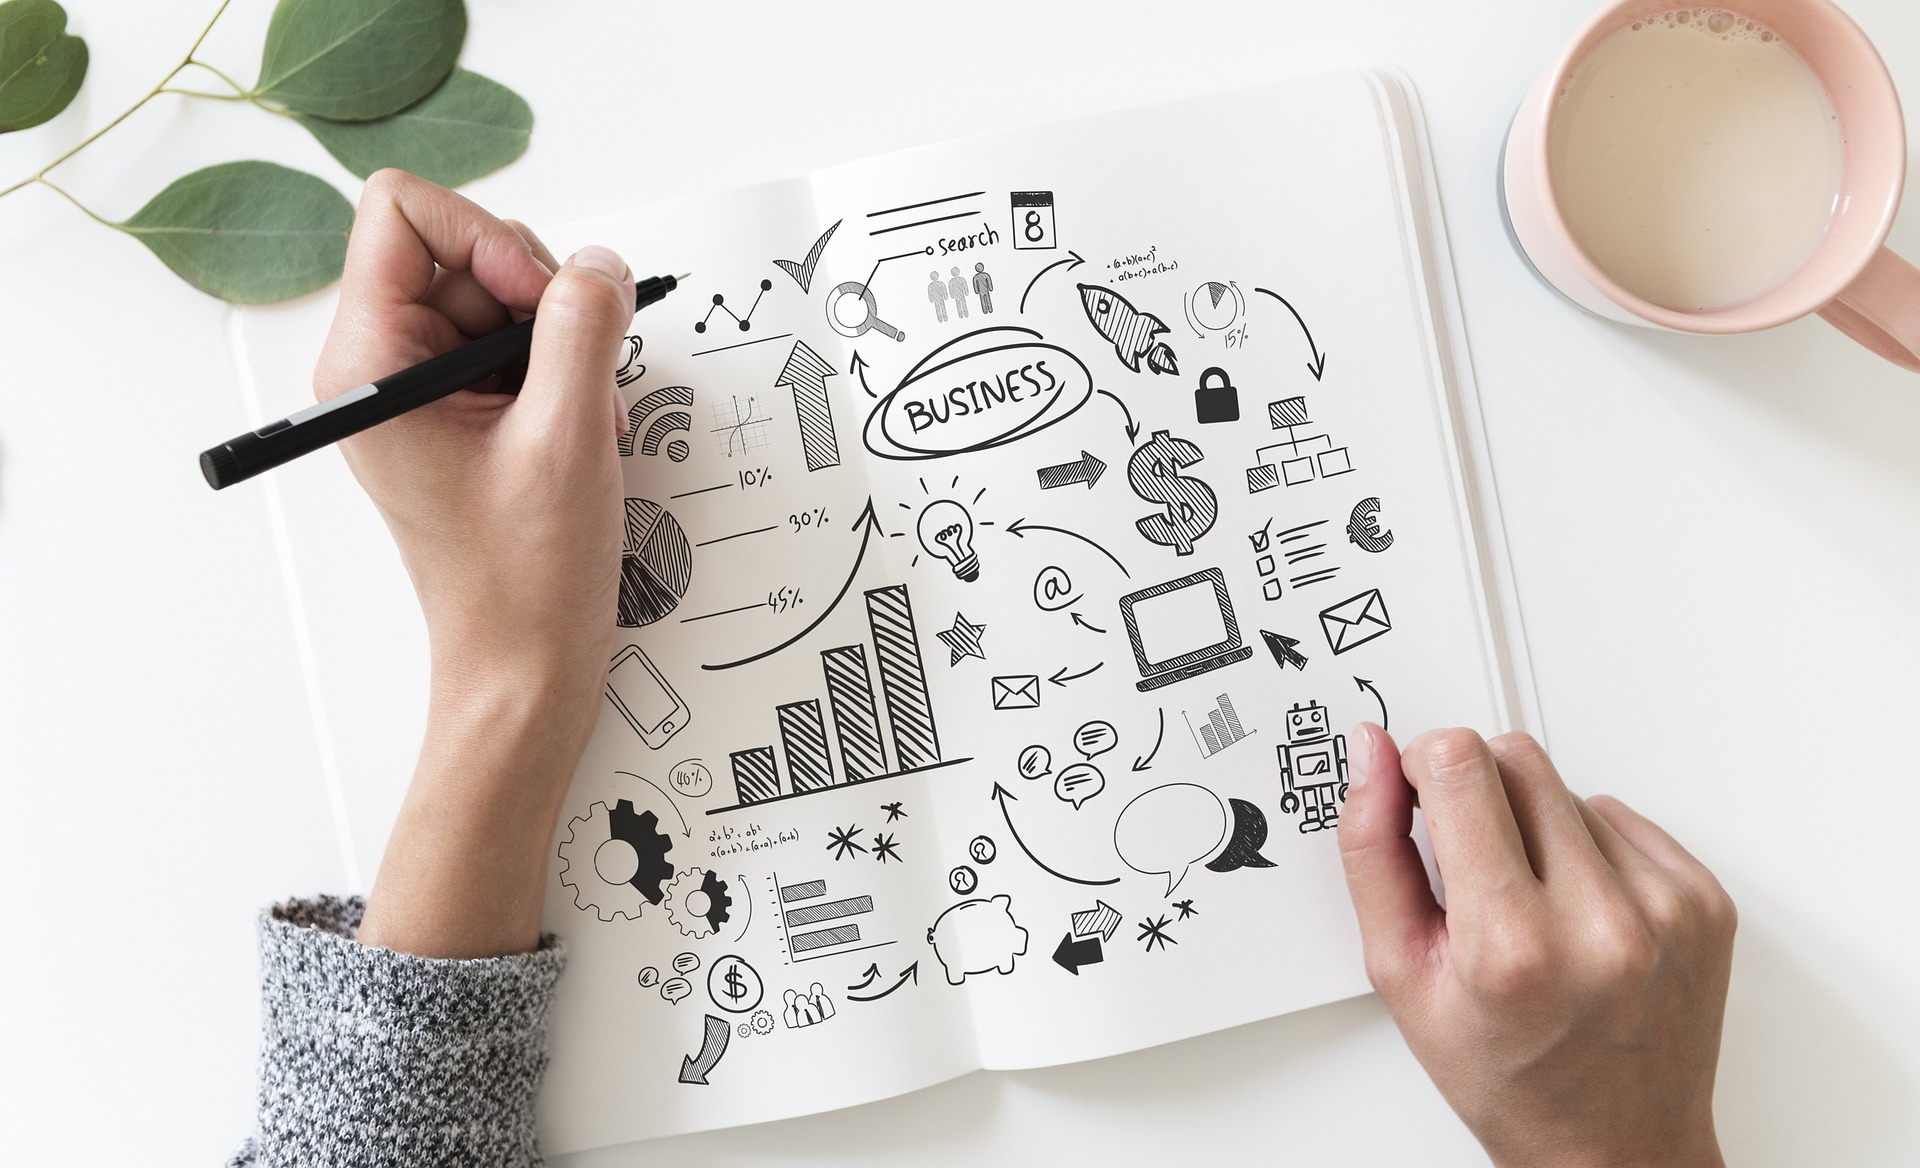 a woman doodling in a pad on business topics to come up with a design for a portfolio